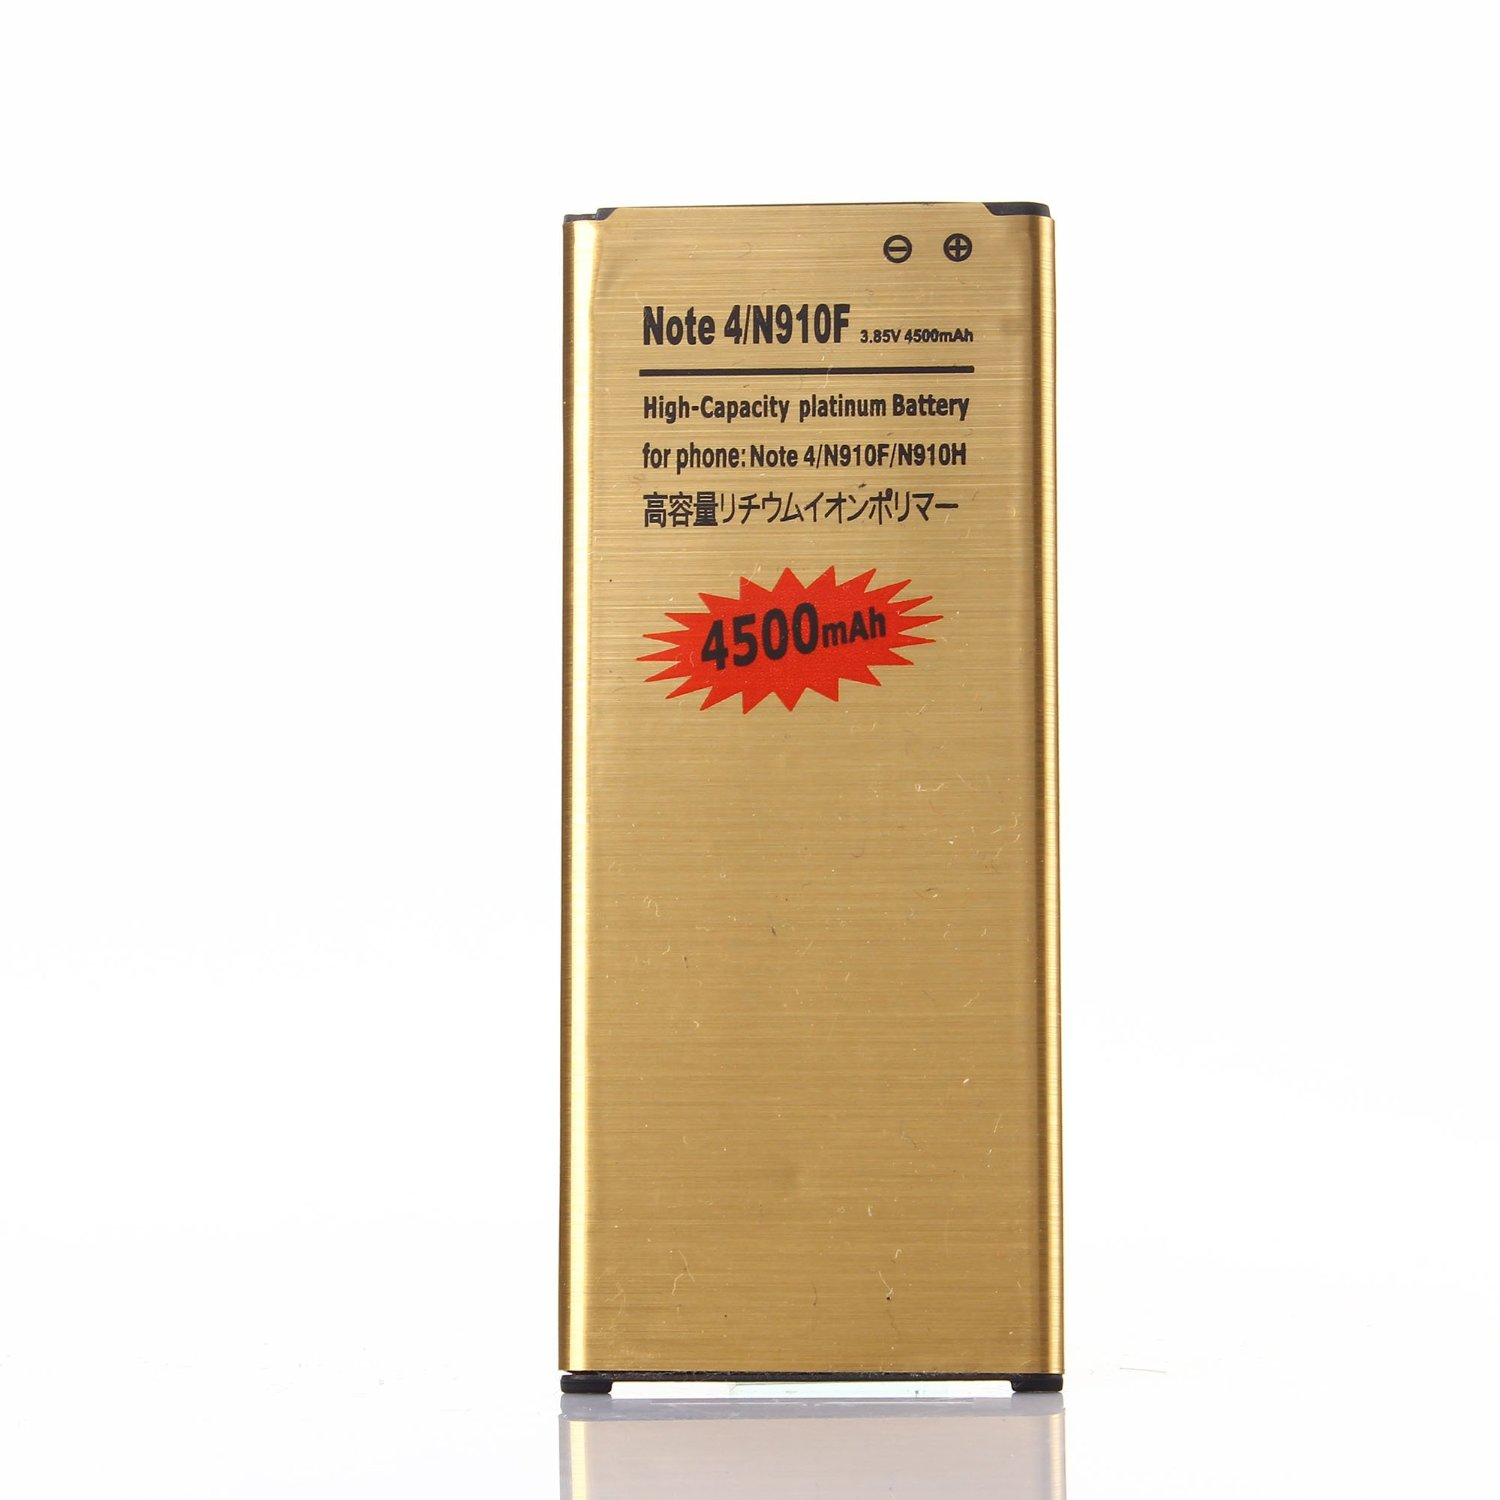 Gold Extended Samsung Galaxy Note 4 High Capacity Battery EB-BN910BBE EB-BN910BBU For Samsung Galaxy Note 4 SM-N910A / Samsung Galaxy Note 4 SM-N910T / Samsung Galaxy Note 4 SM-N910P / Samsung Galaxy Note 4 SM-N910R4 / Samsung Galaxy Note 4 SM-N910V 4500 mAh